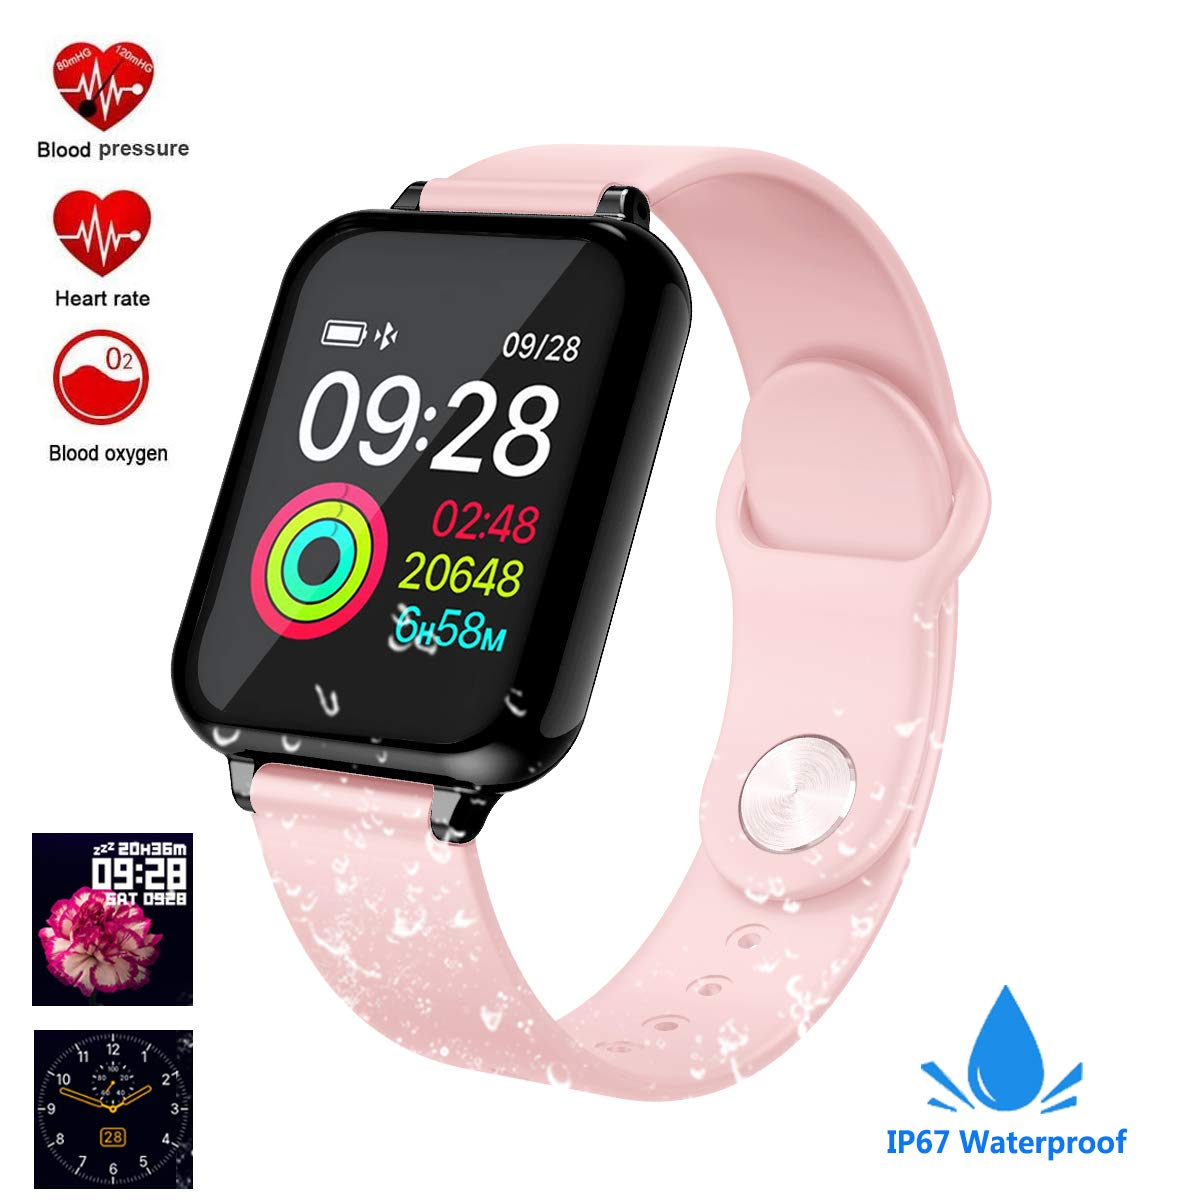 feifuns Smart Watch, Fitness Tracker Activity Tracker with Heart Rate Monitor 1.3 Color Screen with Blood Pressure Sleep Monitor Step Calorie Counter,IP67 Waterproof Band for Men Women Kids (Pink)